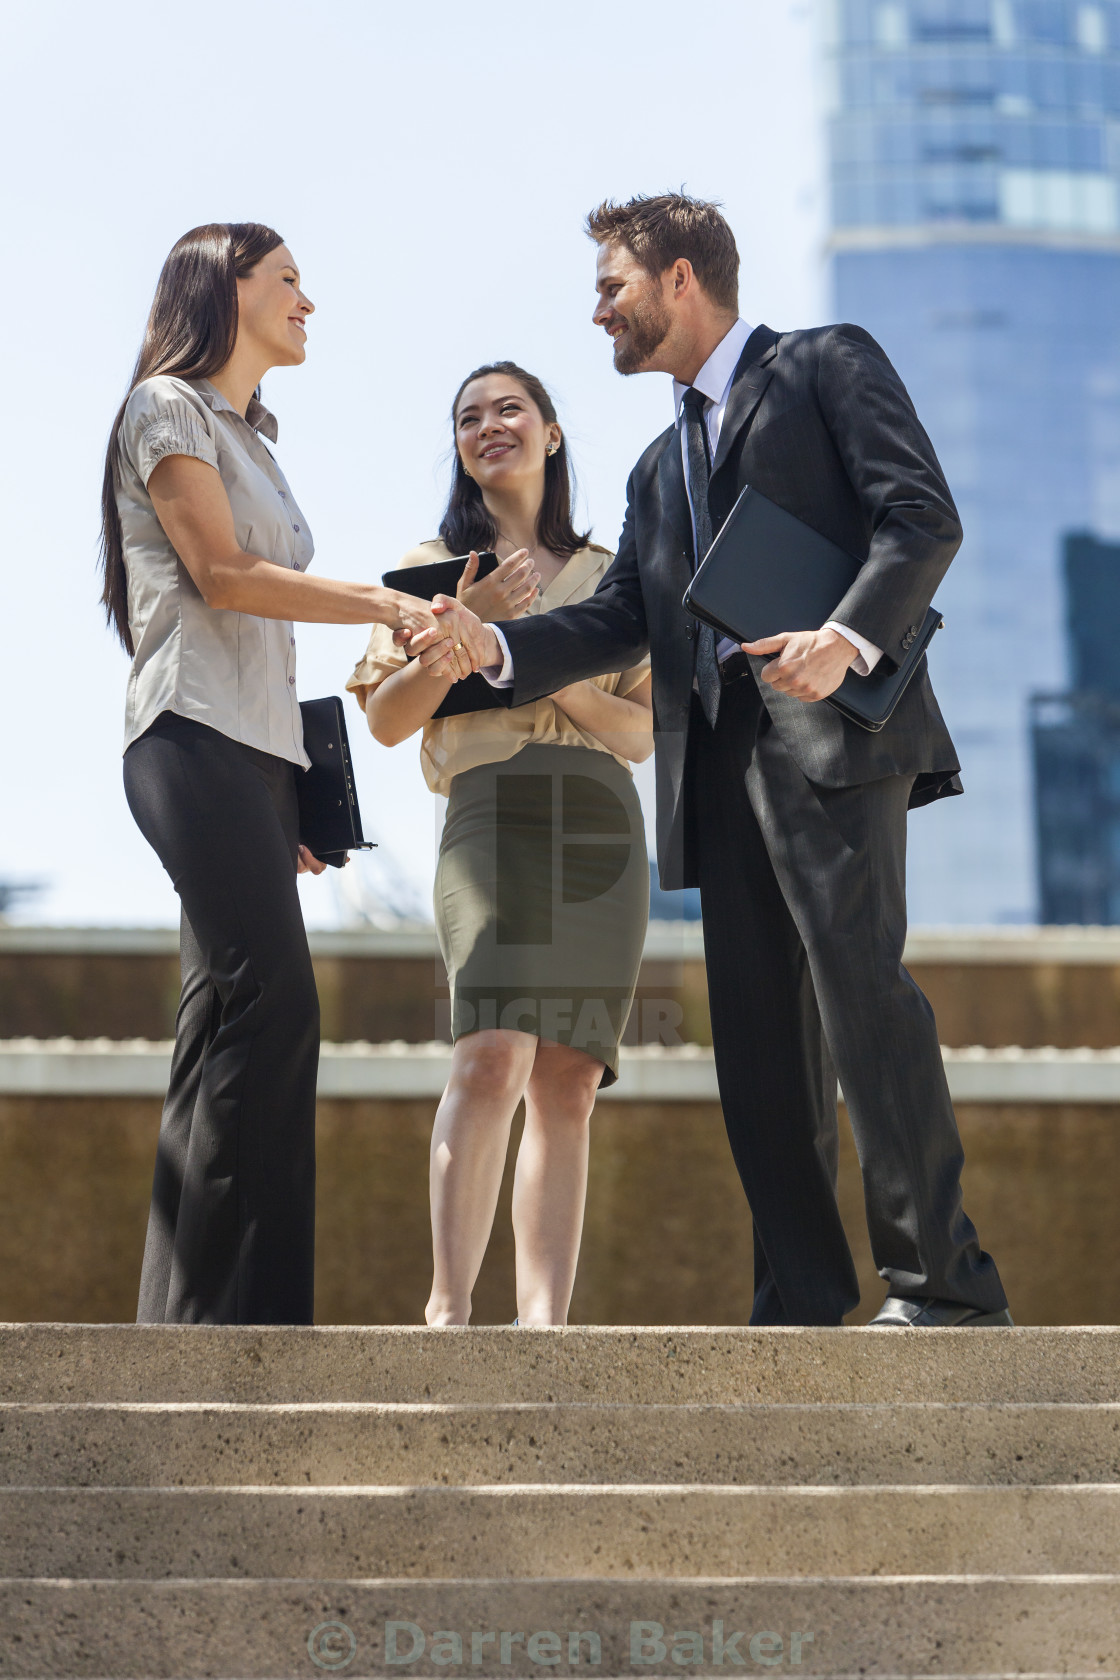 """City Business Man Woman Team Shaking Hands"" stock image"